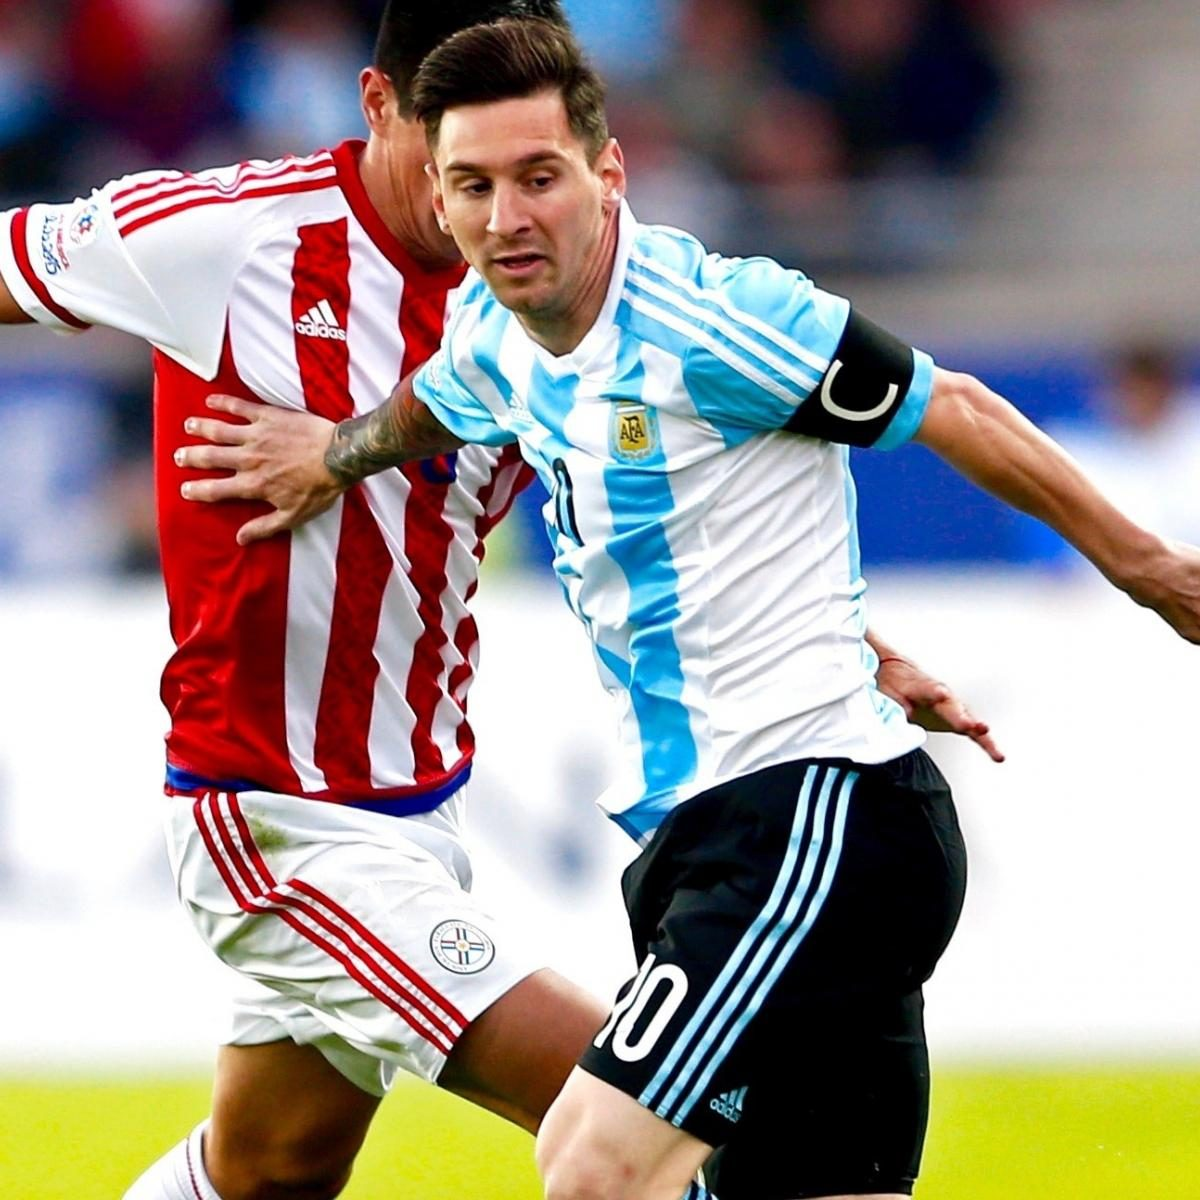 Messi's Argentina Has Possibility to Visit Bangladesh in November